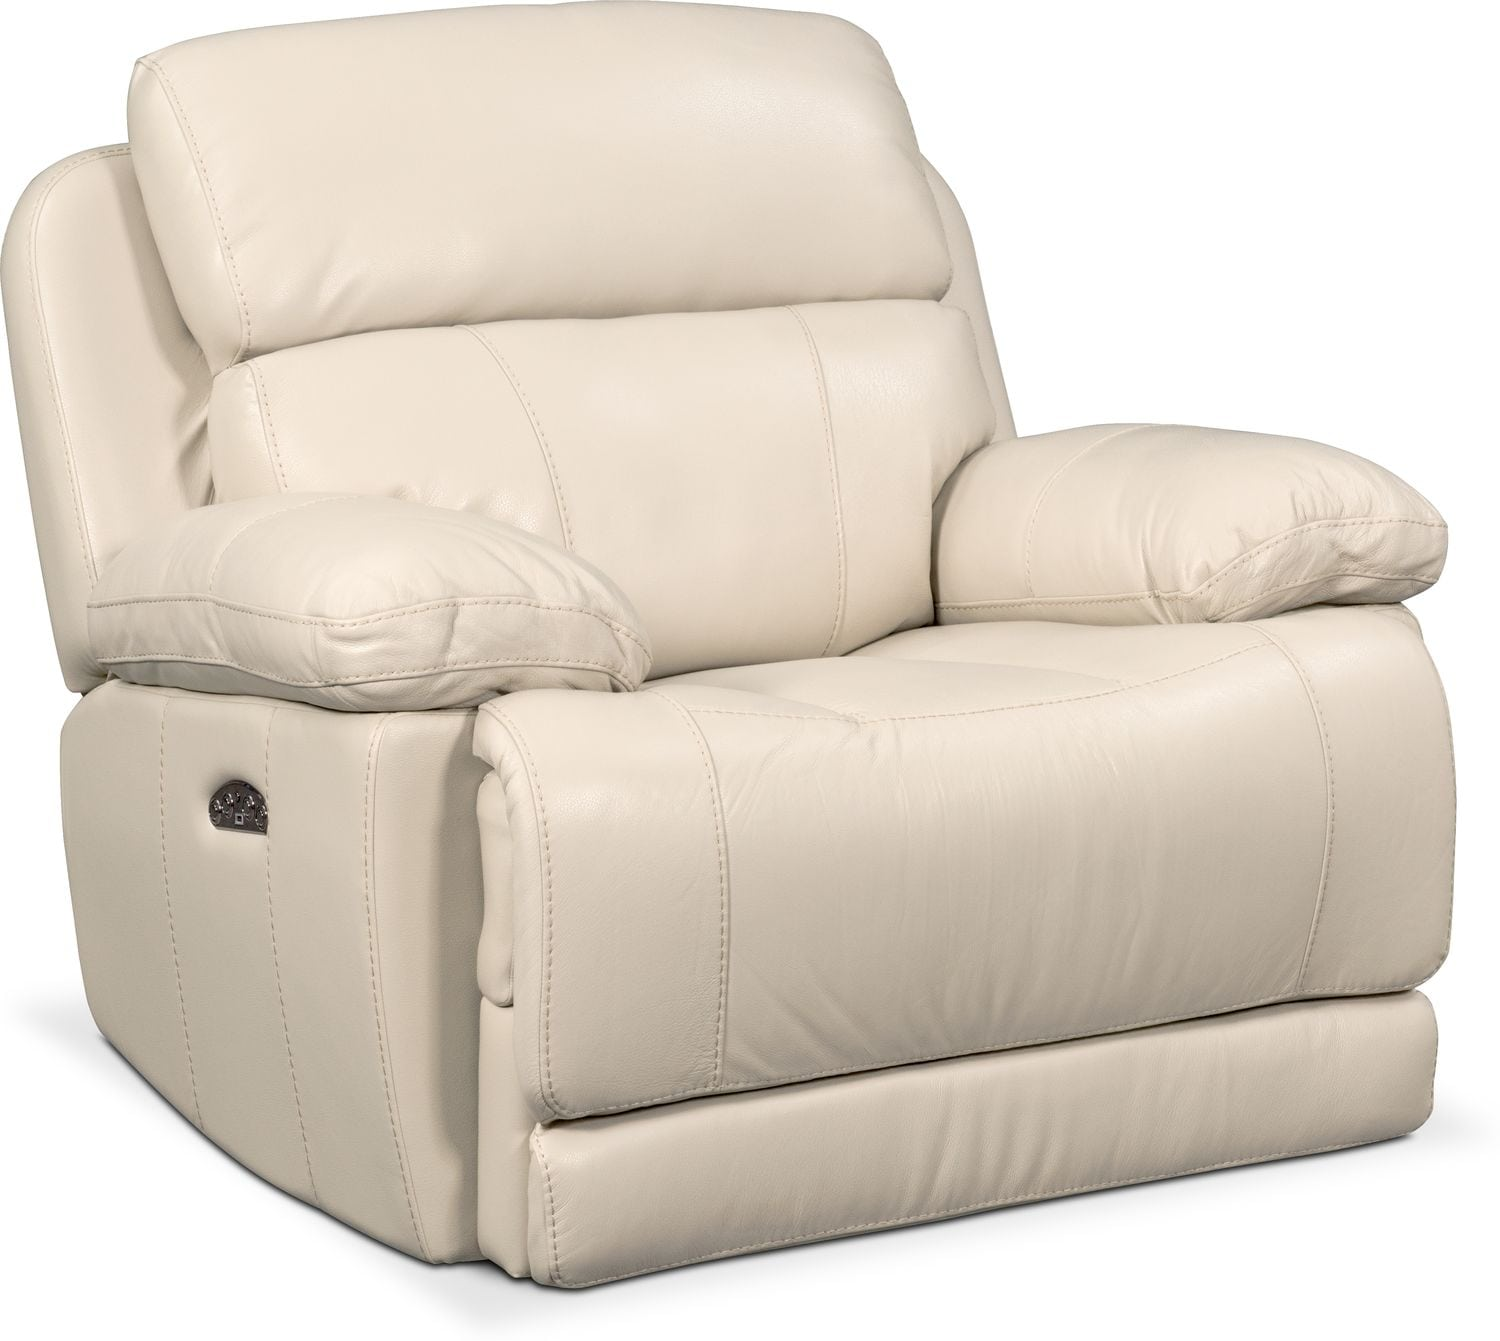 backstore htm sofa dimensions chair leather ii premier recliner and barcalounger with